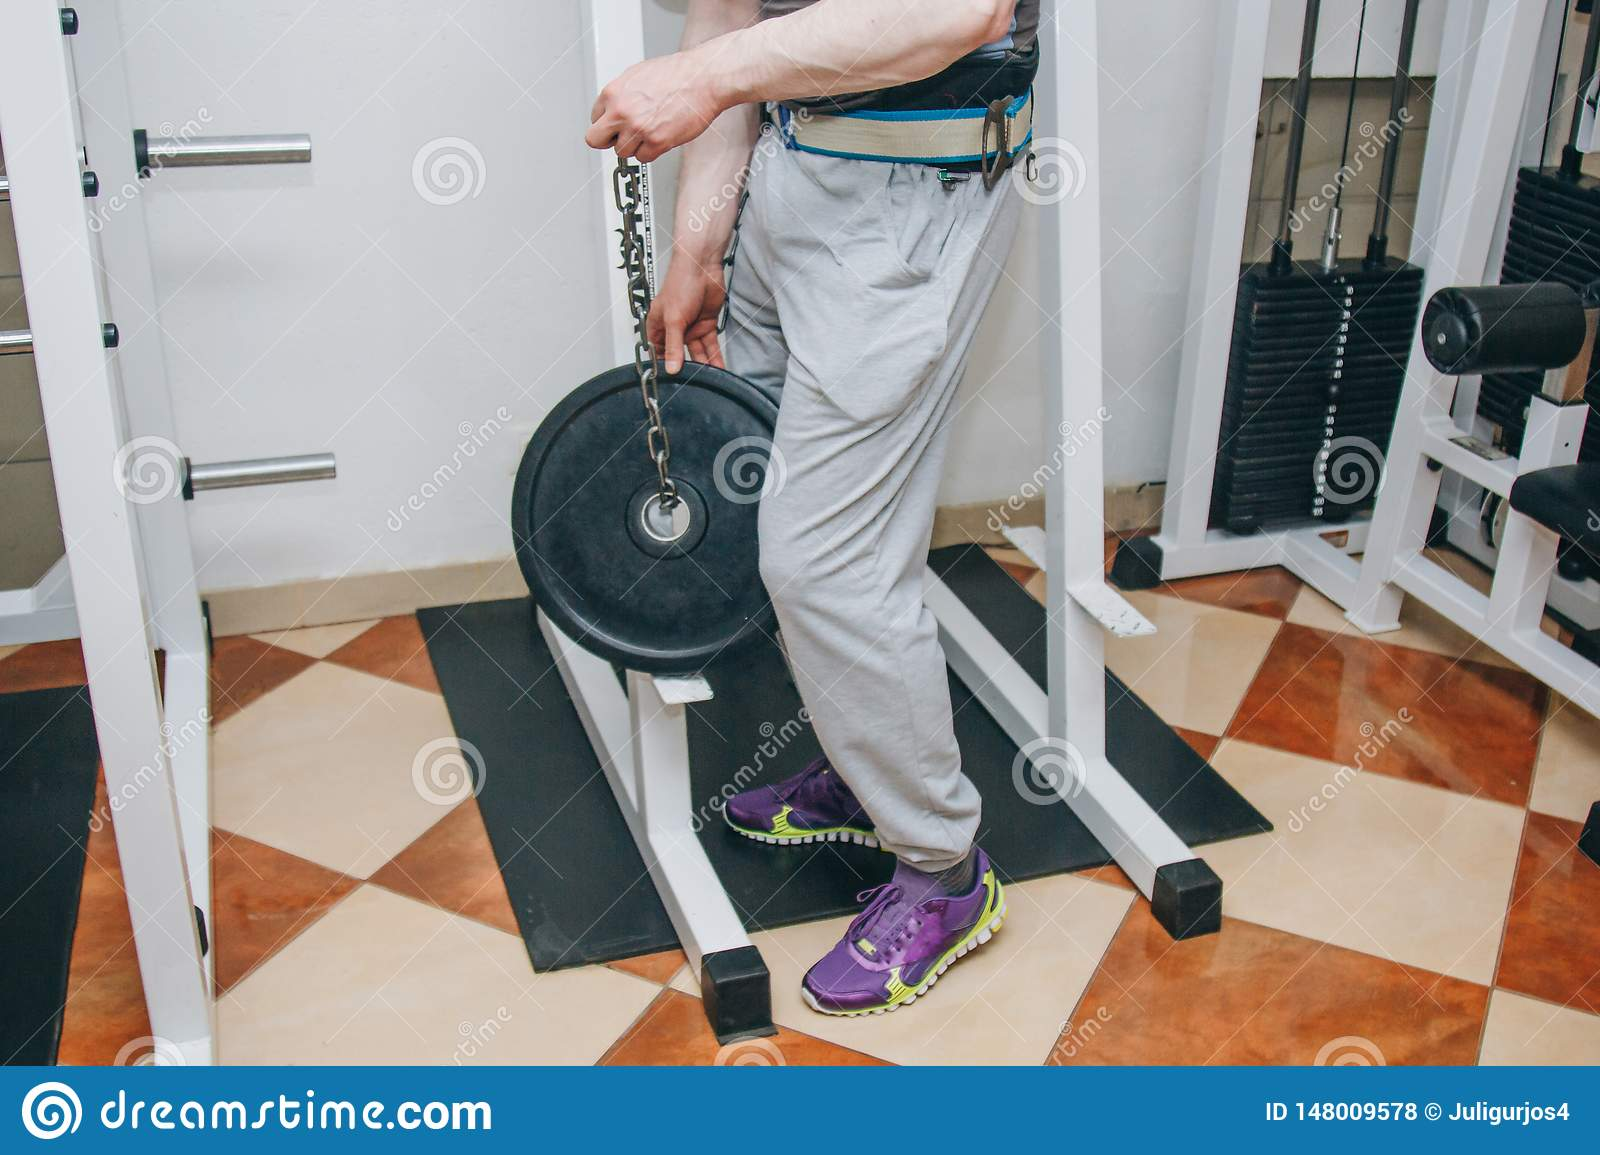 Athlete doing exercise with weight on the waist belt in the center of training. training tools in the gym close-up